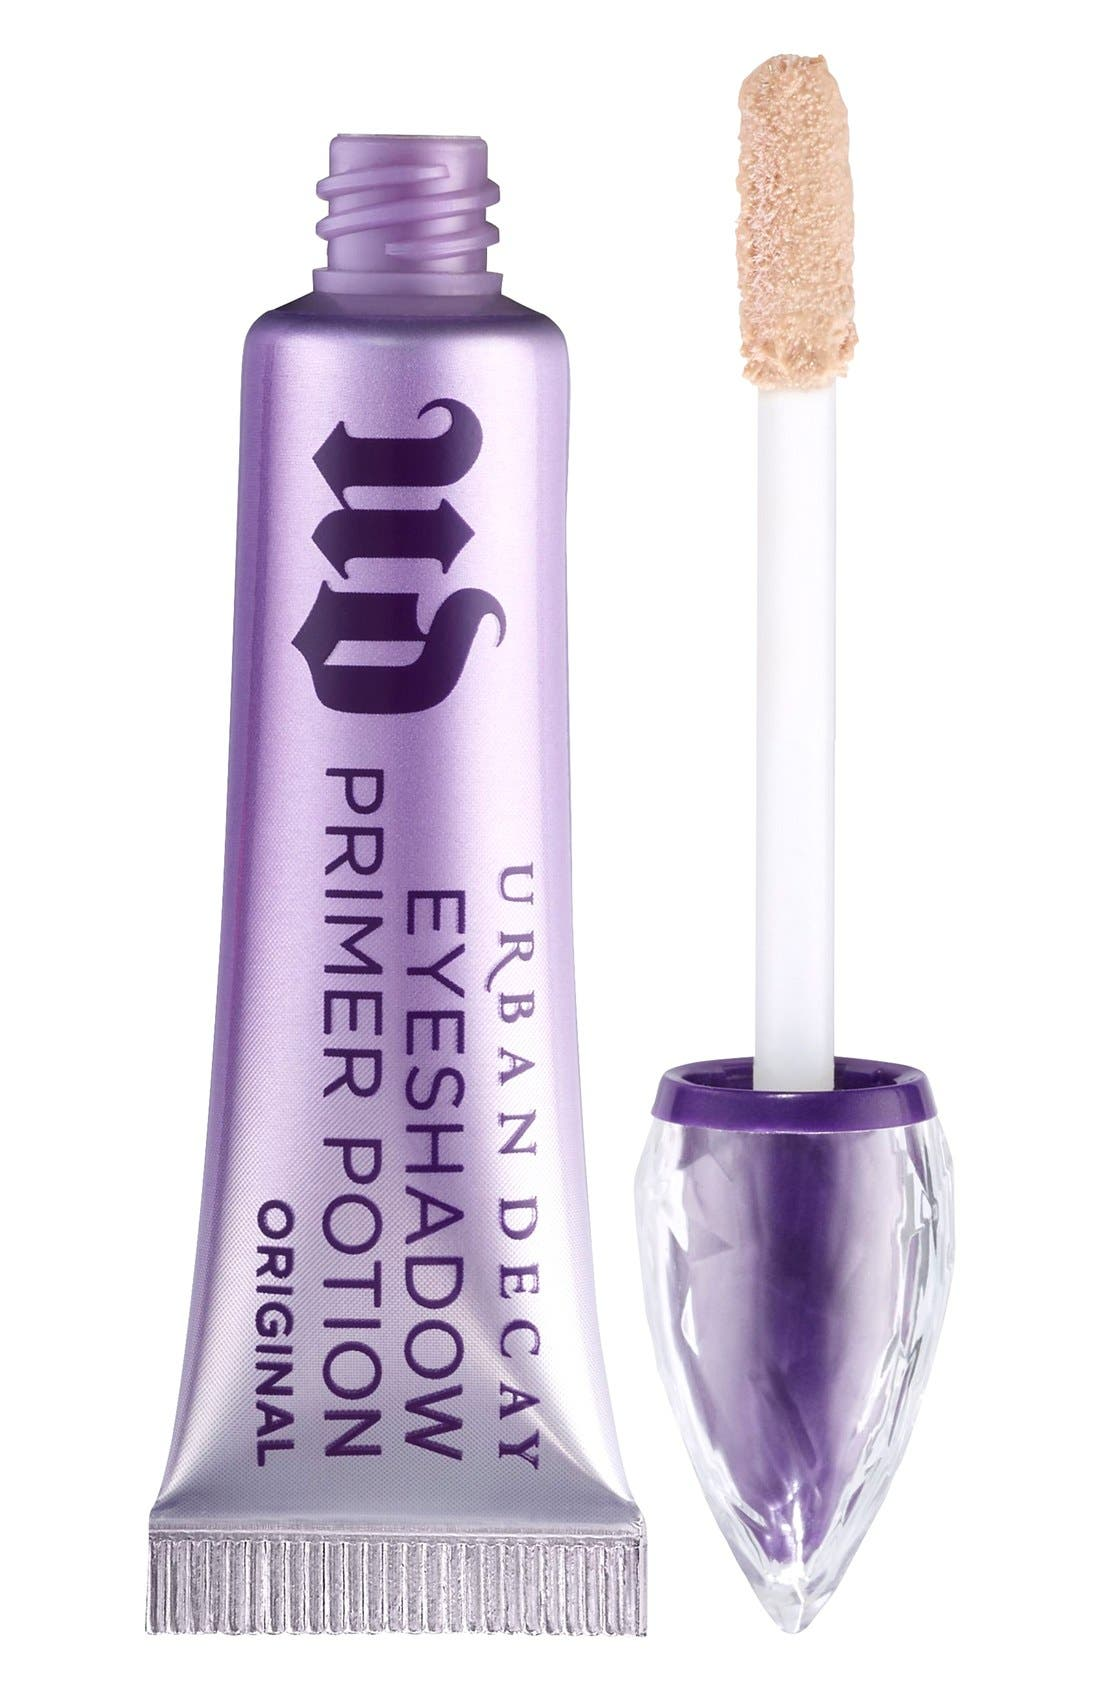 Urban Decay Original Eyeshadow Primer Potion